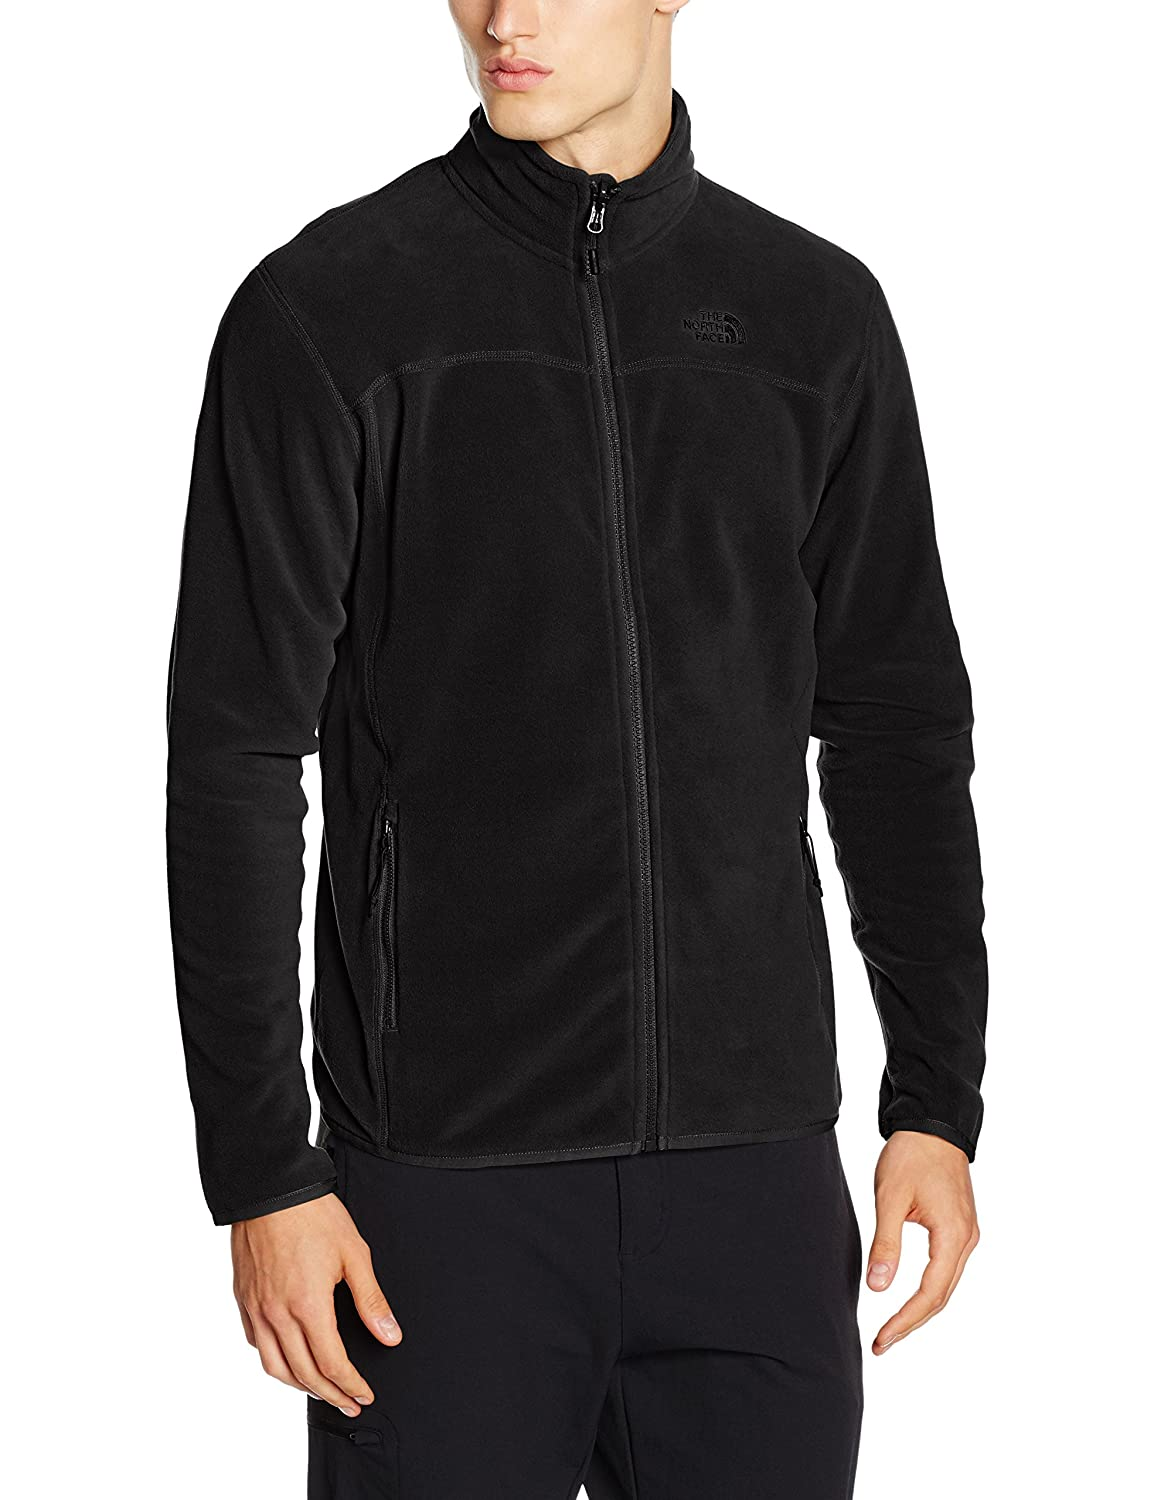 TALLA M. The North Face 100 Glacier Chaqueta, Hombre